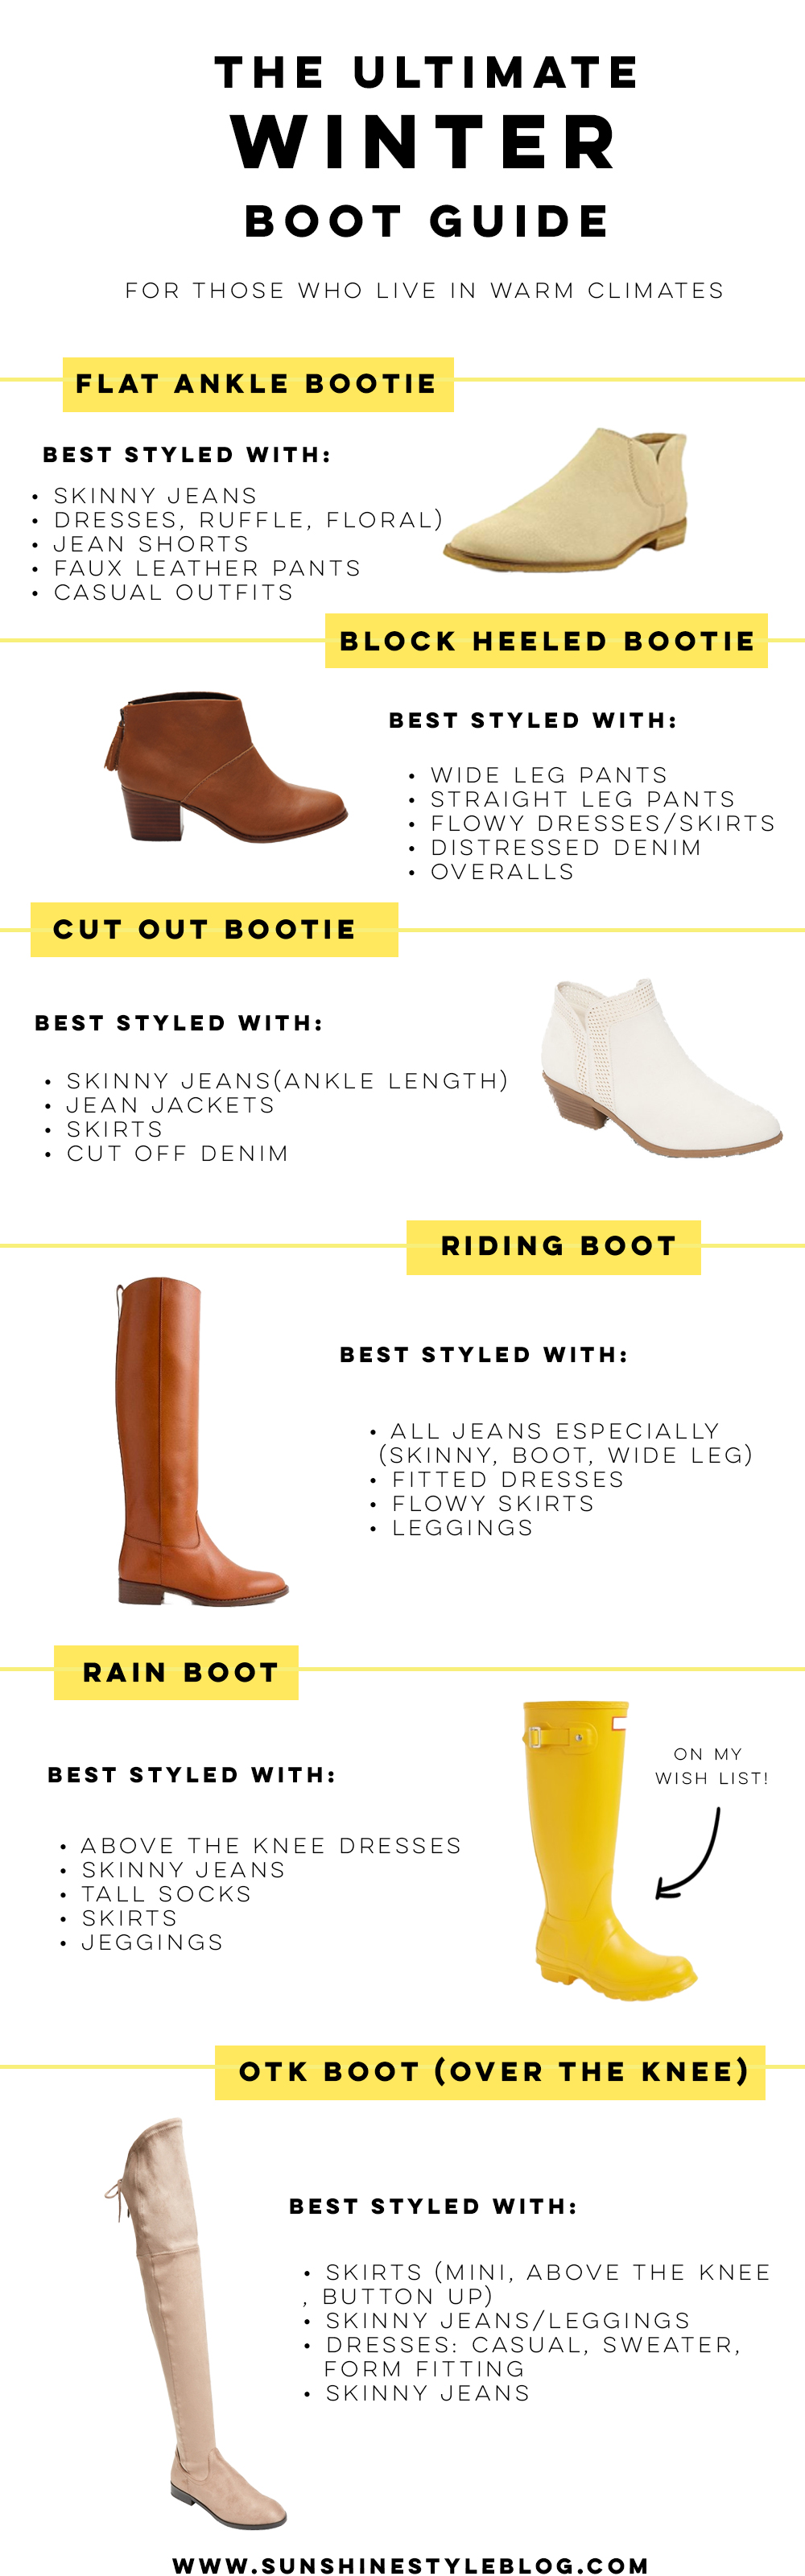 The Ultimate Winter Boot Guide: How to Wear and Style Boots in the Winter + Winter Outfit Ideas